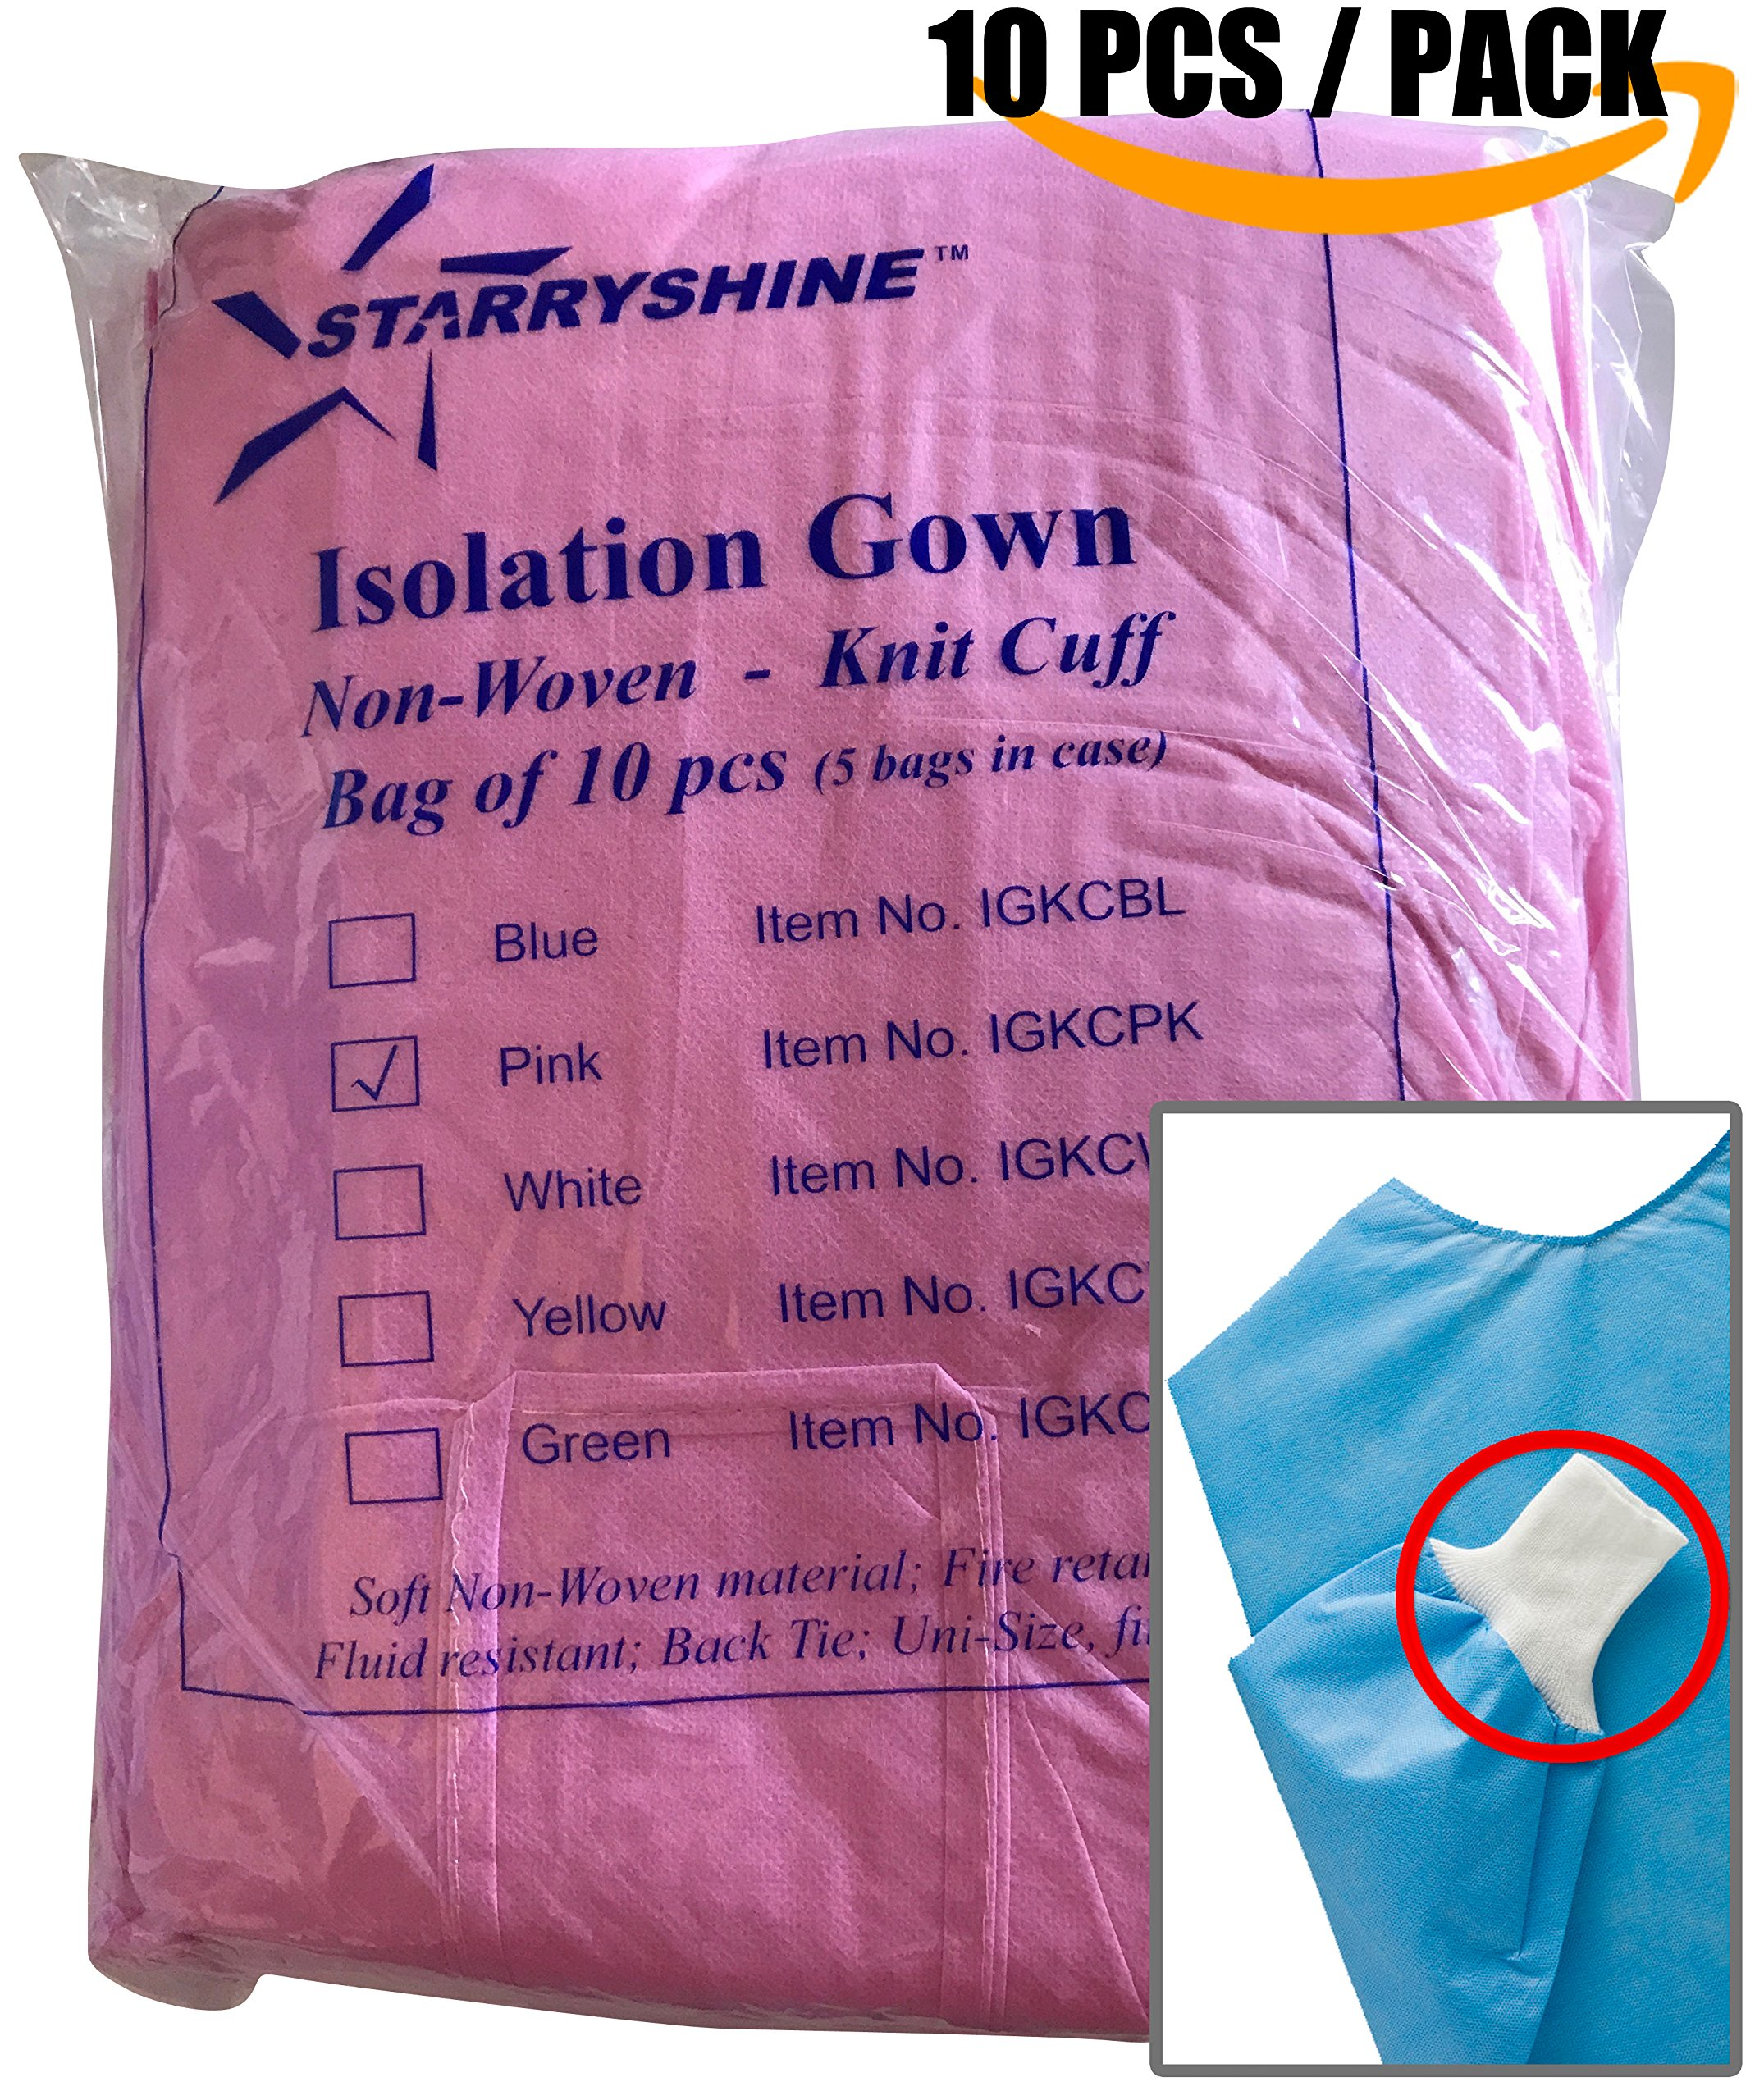 Dental Medical Latex Free Disposable Isolation Gowns Knit Cuff Non Woven | Fluid Resistant (10 Gowns/Pack, Pink)